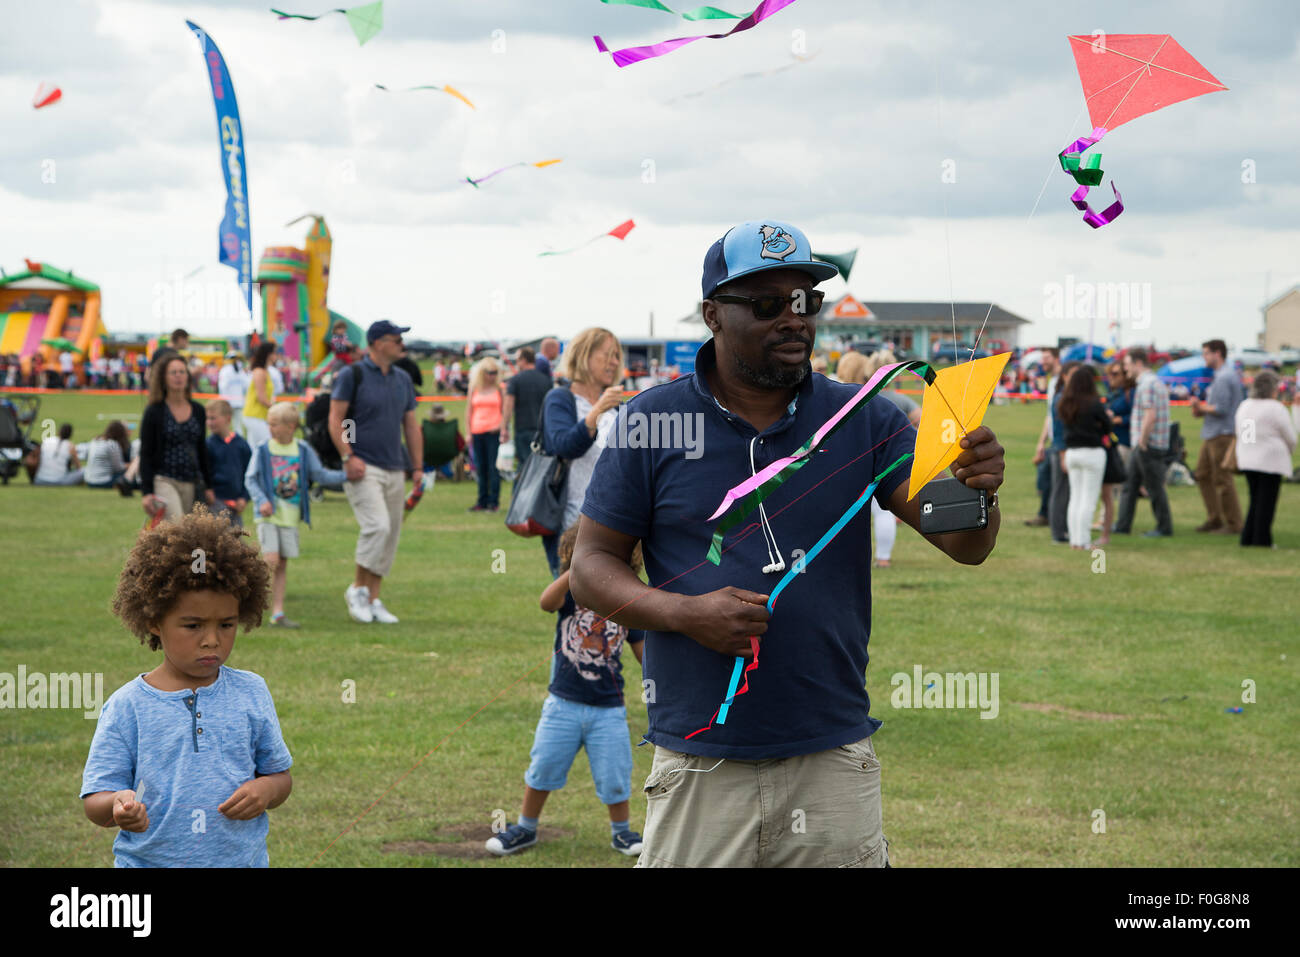 Portsmouth, UK. 15th August 2015. A man launches a string of kites as children look on at the International Kite Stock Photo